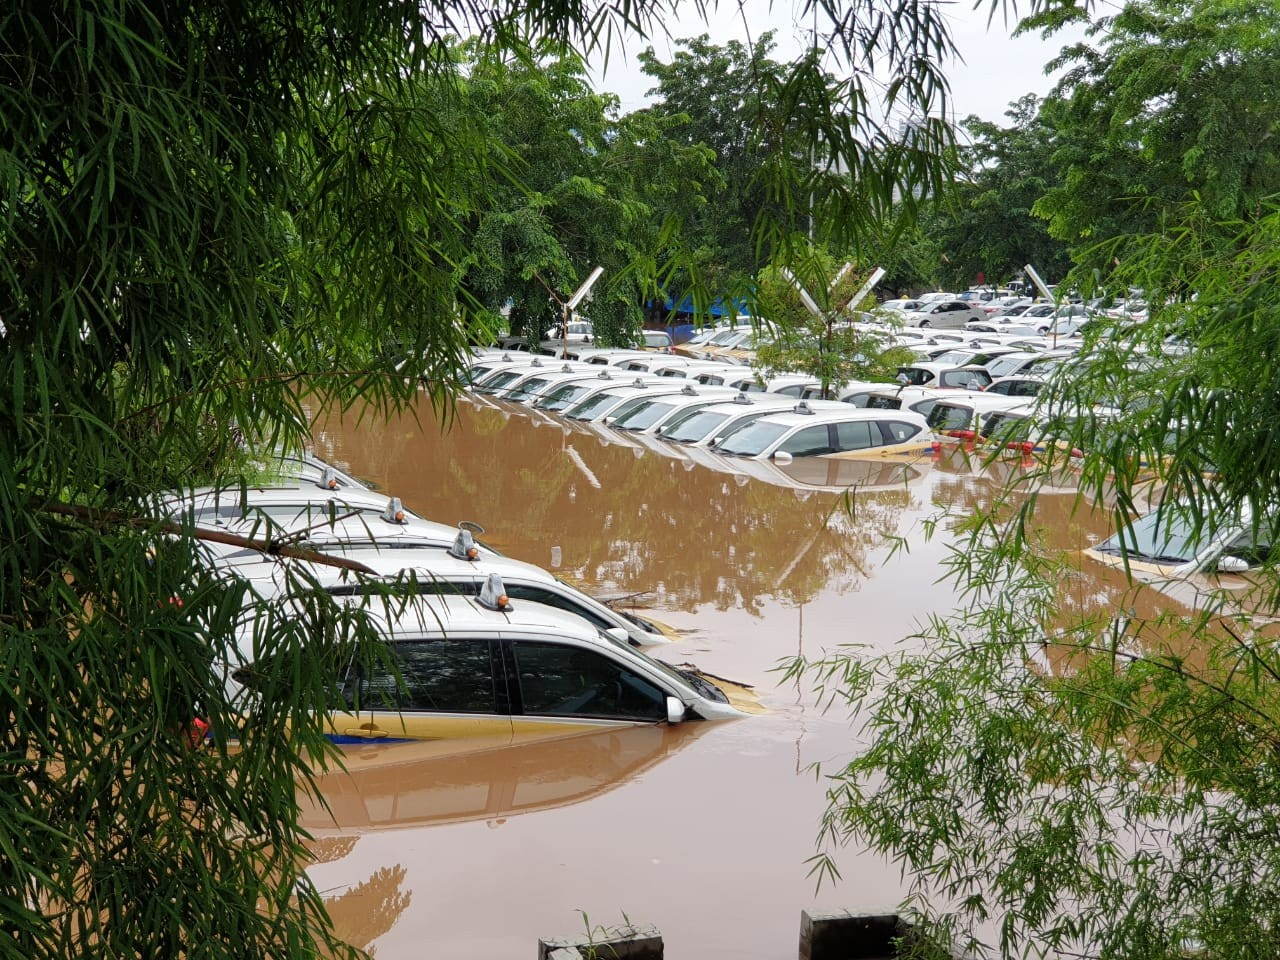 Cars are seen partially submerged in water at the Express taxi pool in Tanah Kusir, South Jakarta, on Jan. 1. JP/R Berto Wedhatama